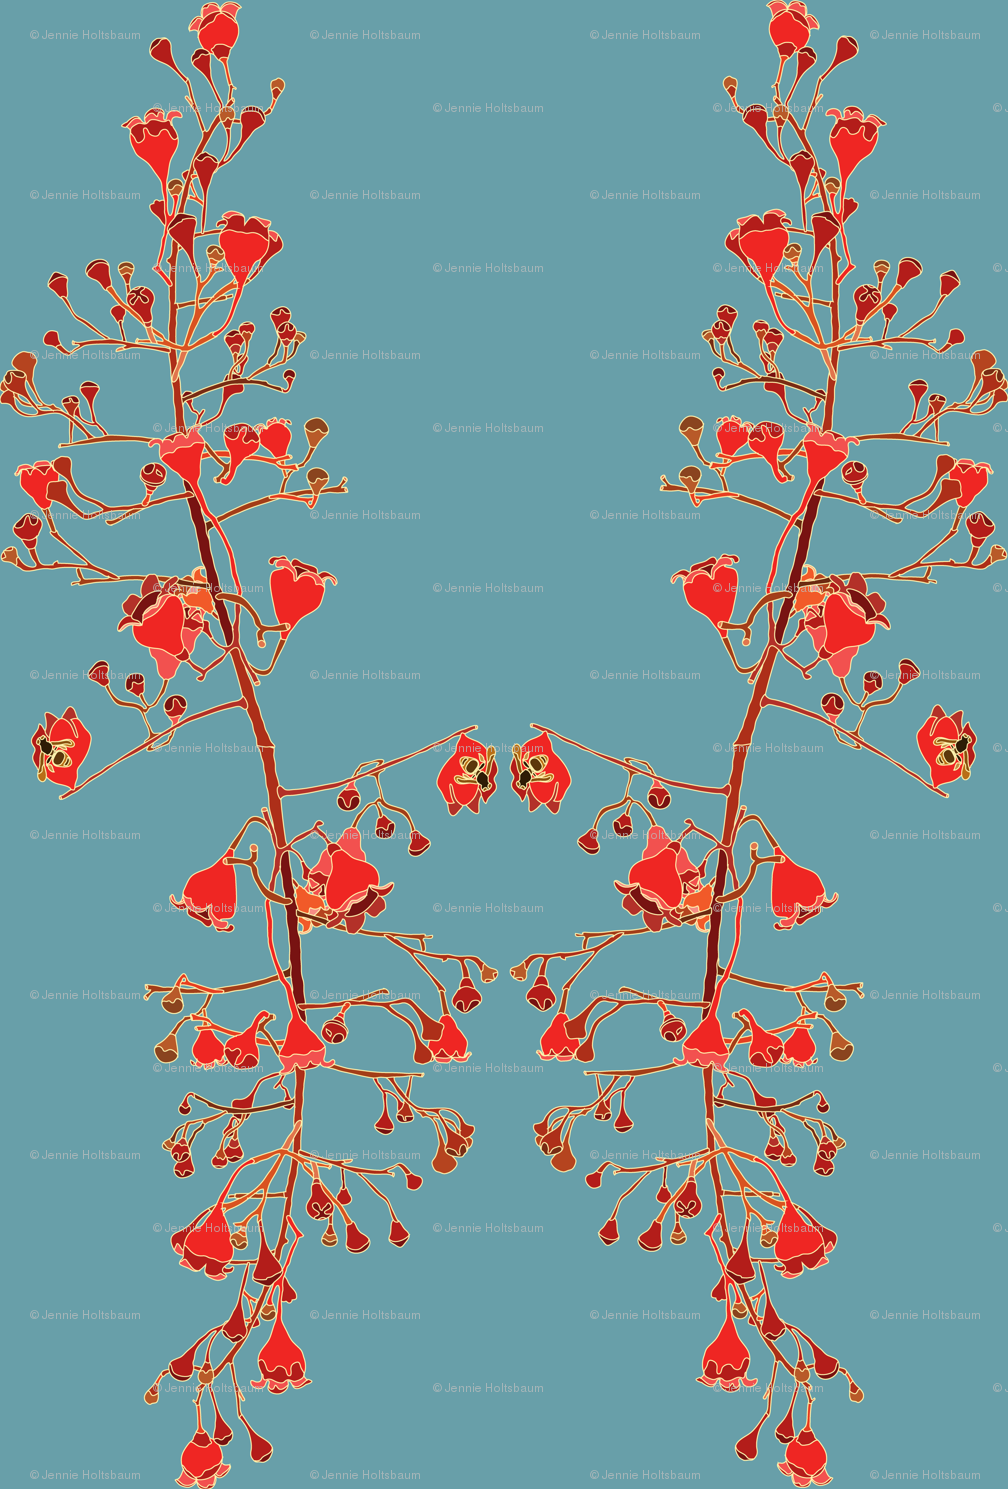 2941 Illawarra-Flame-Tree #1-Teal wallpaper - jennieholtsbaumdesign